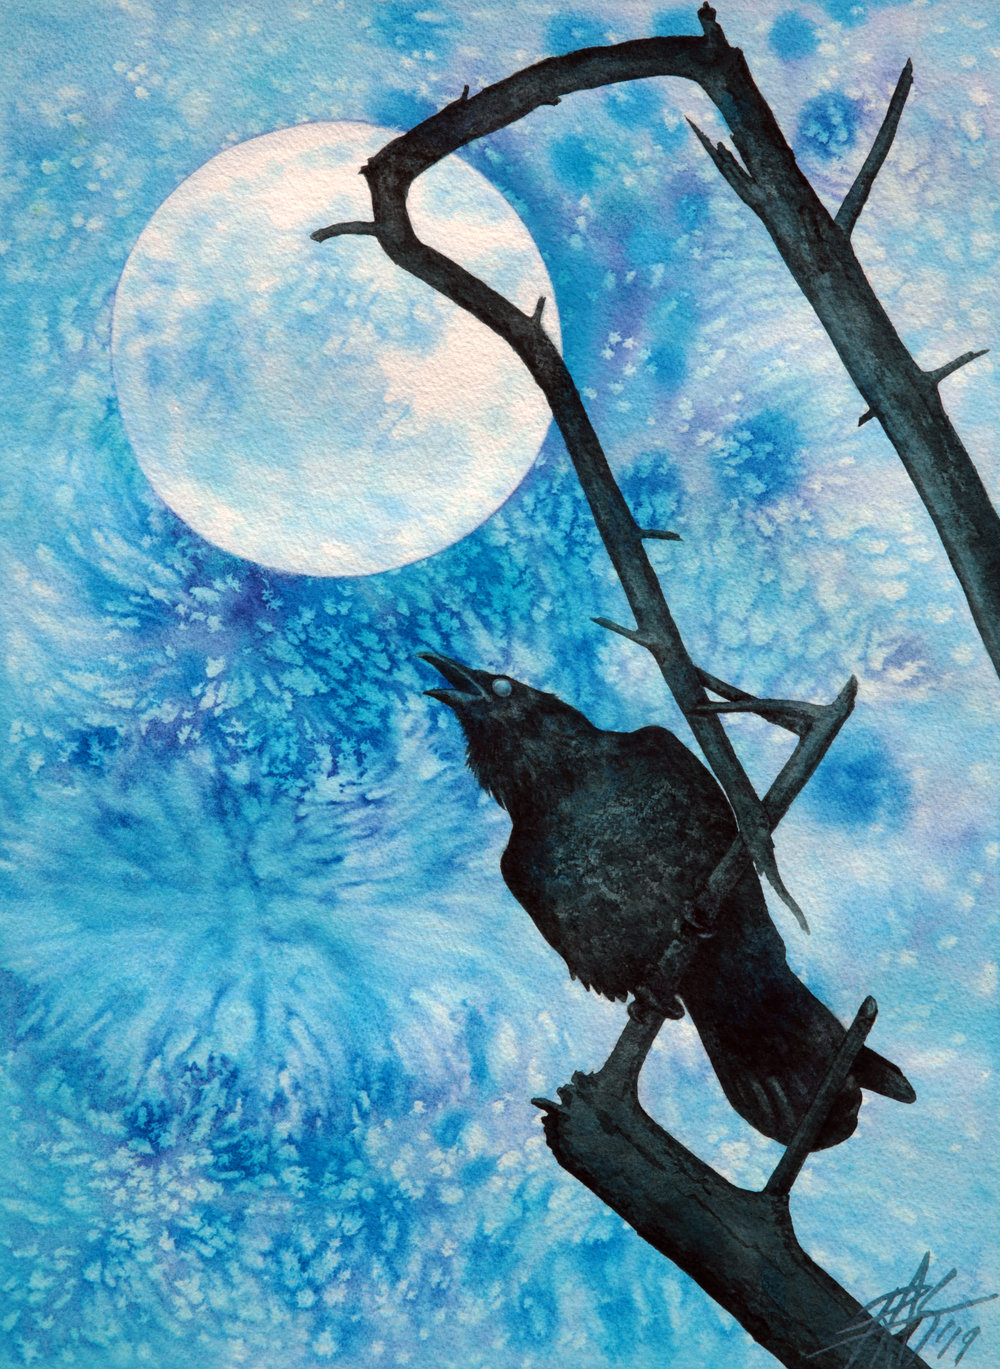 "Raven with Torrey Pine Branch and Cold Moon . 2019. Transparent watercolor on 300lb cold press paper. 14"" x 19"" (36 x 48cm)."